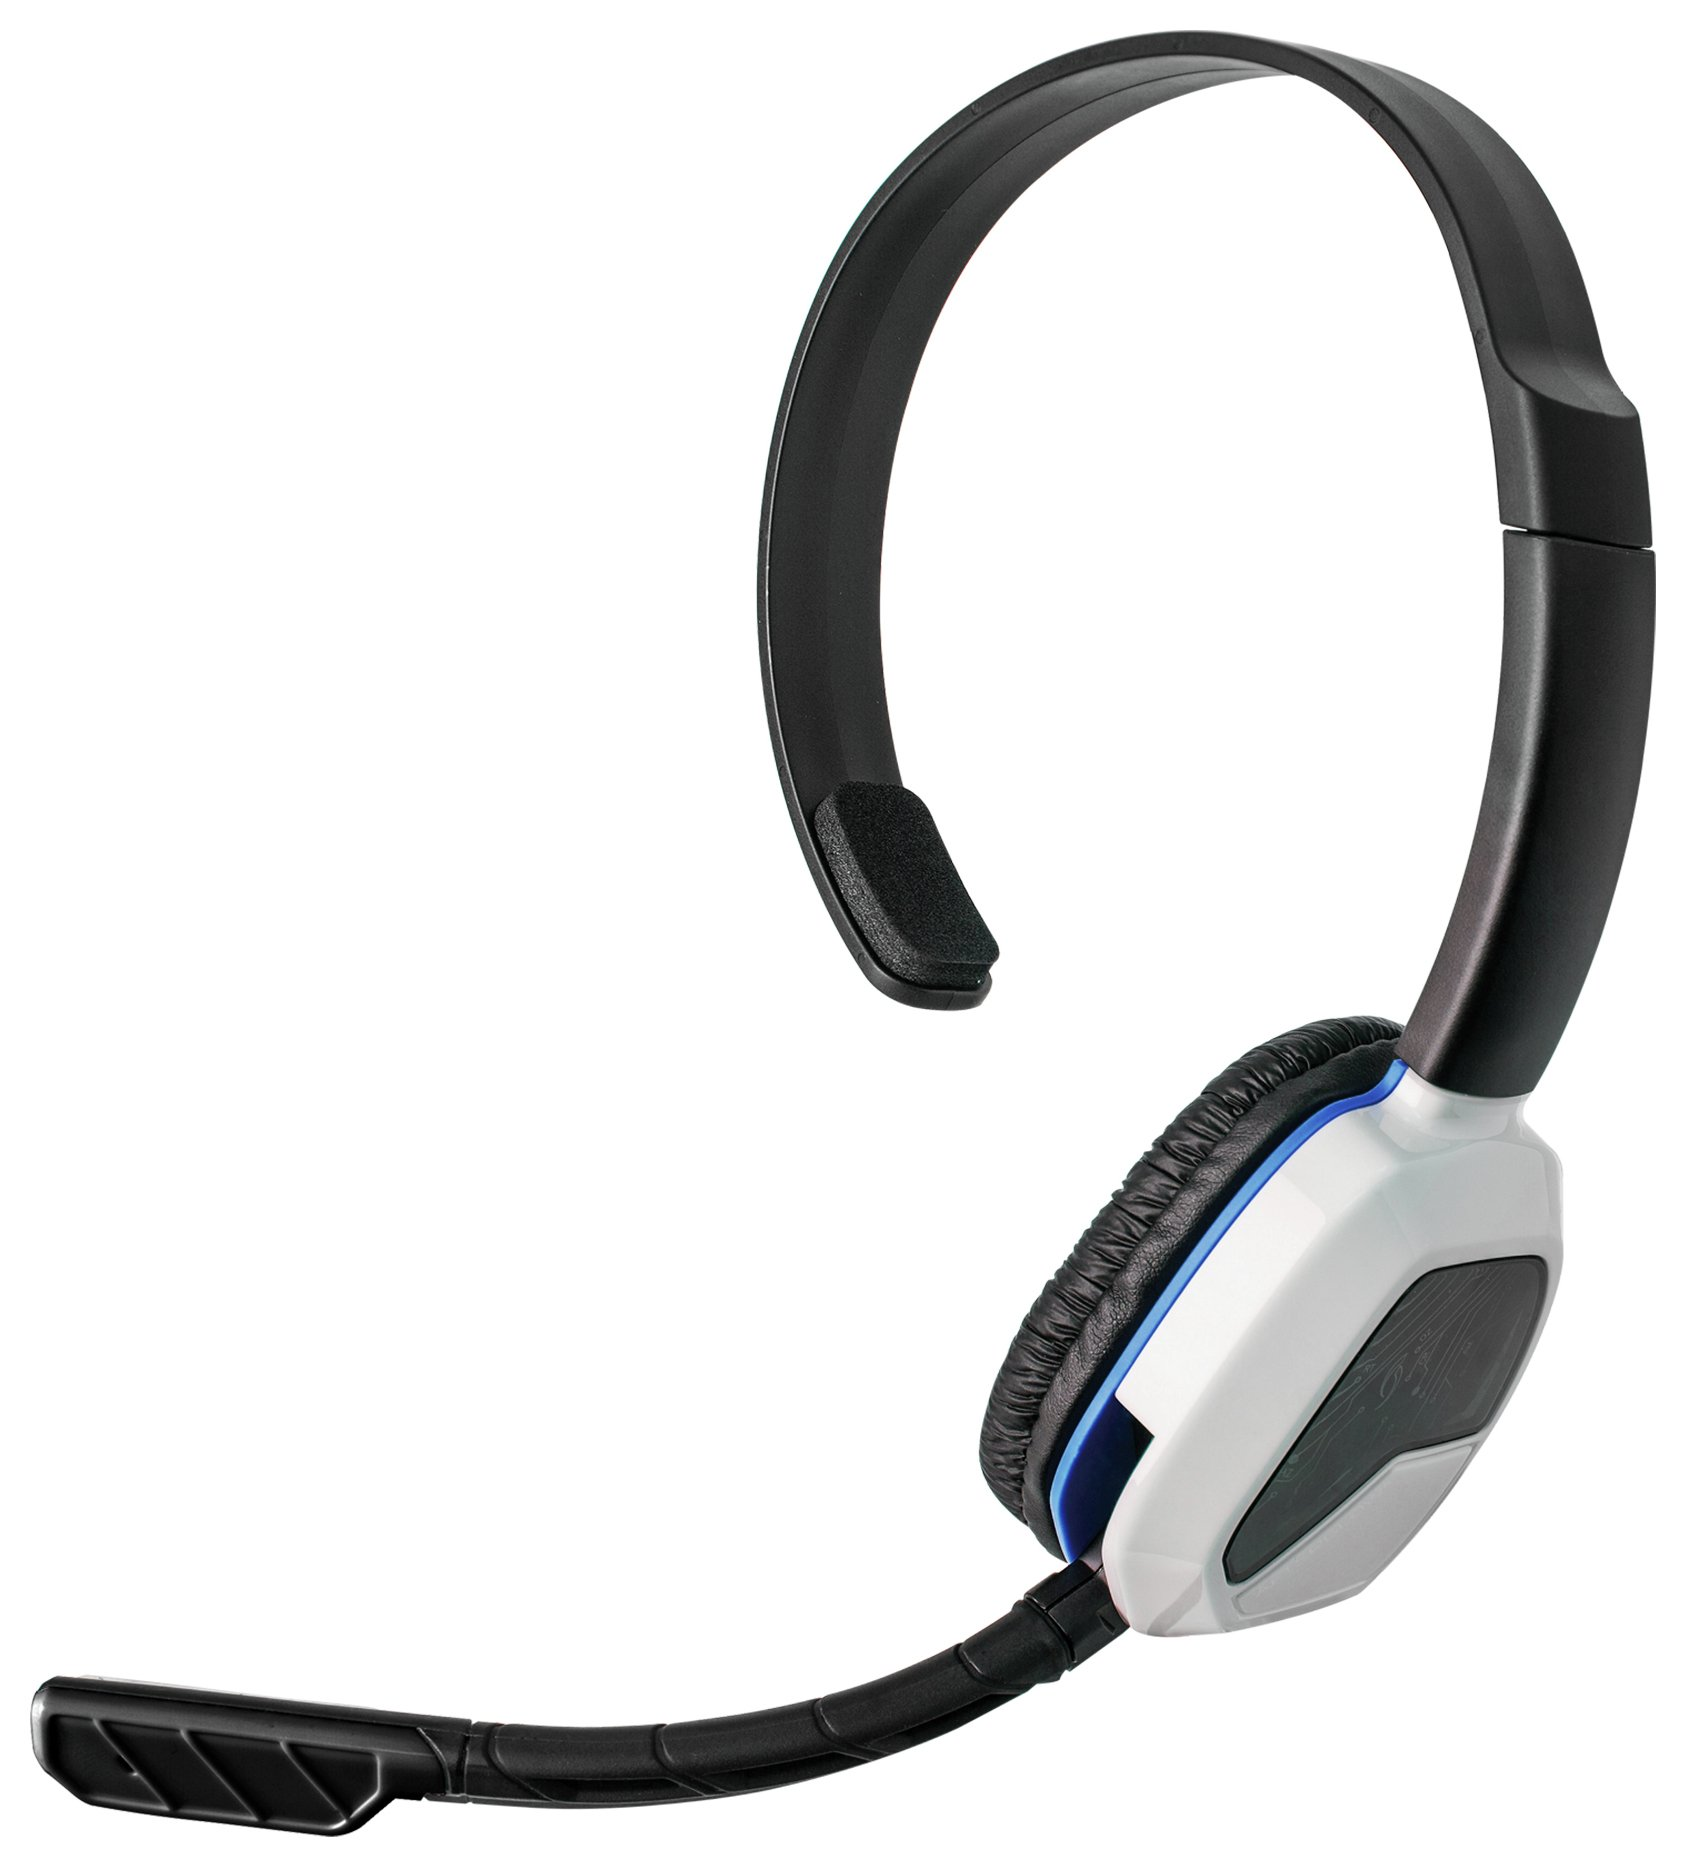 Image of Afterglow LVL 1 Mono Chat Headset for PS4 - White